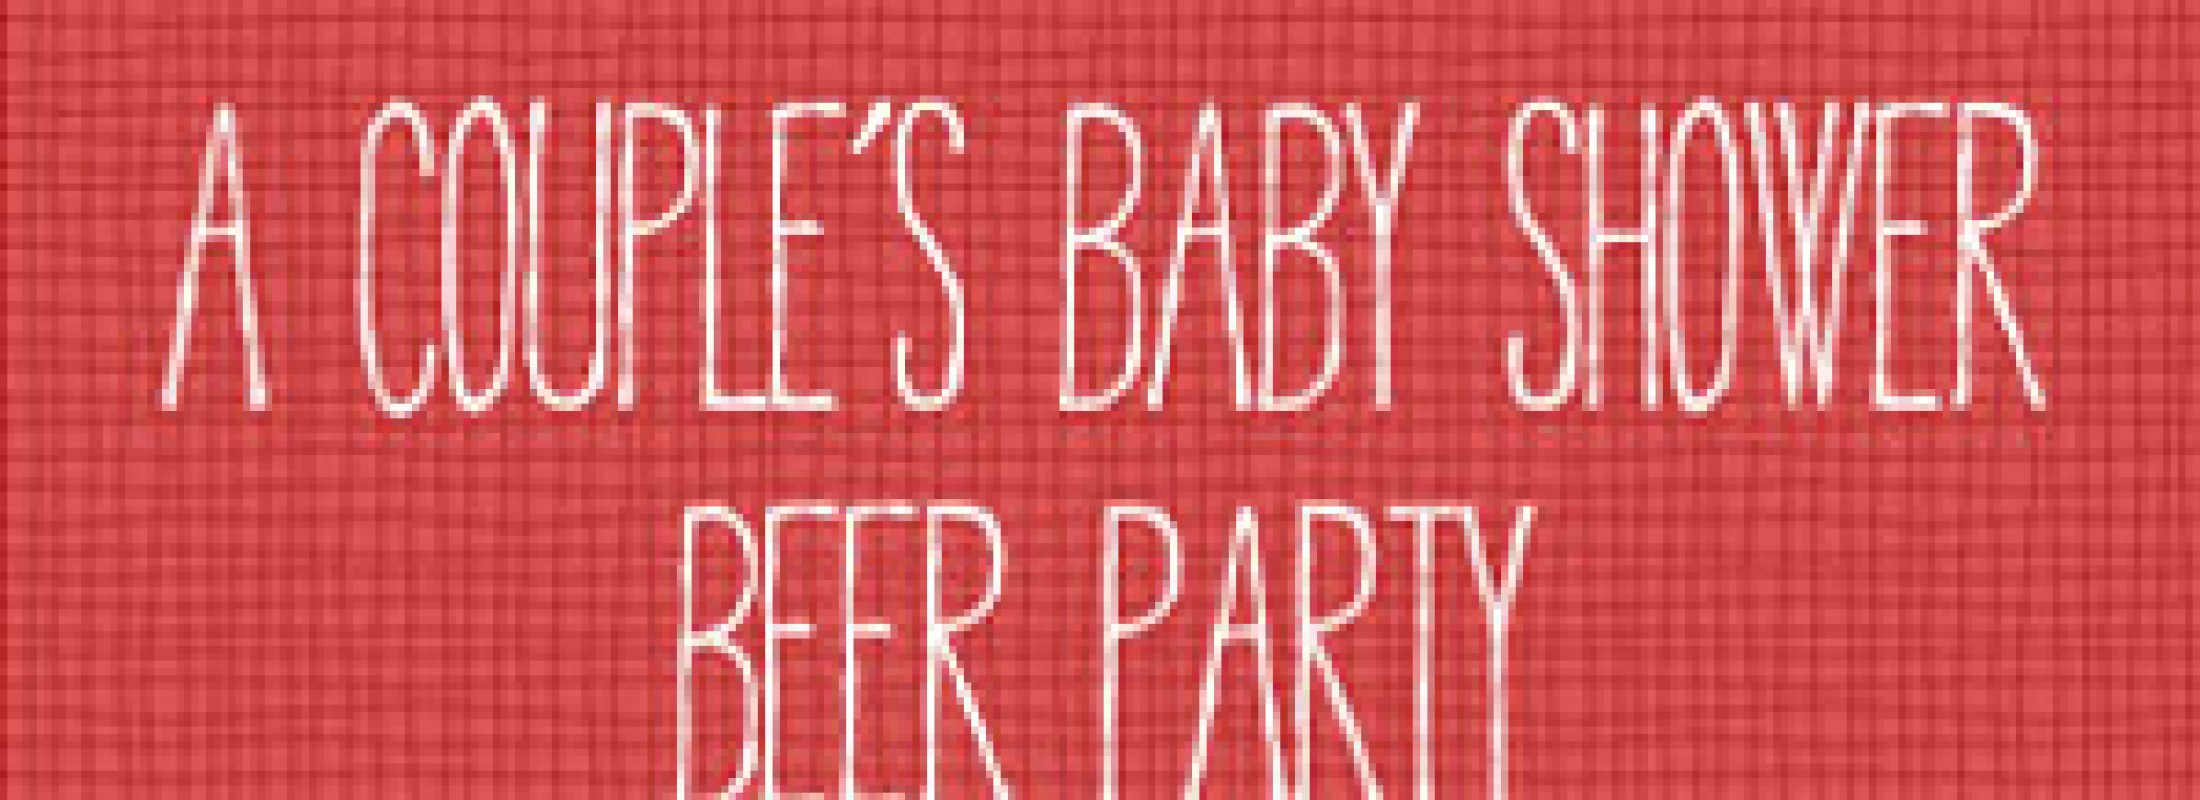 Baby Shower Beer Party